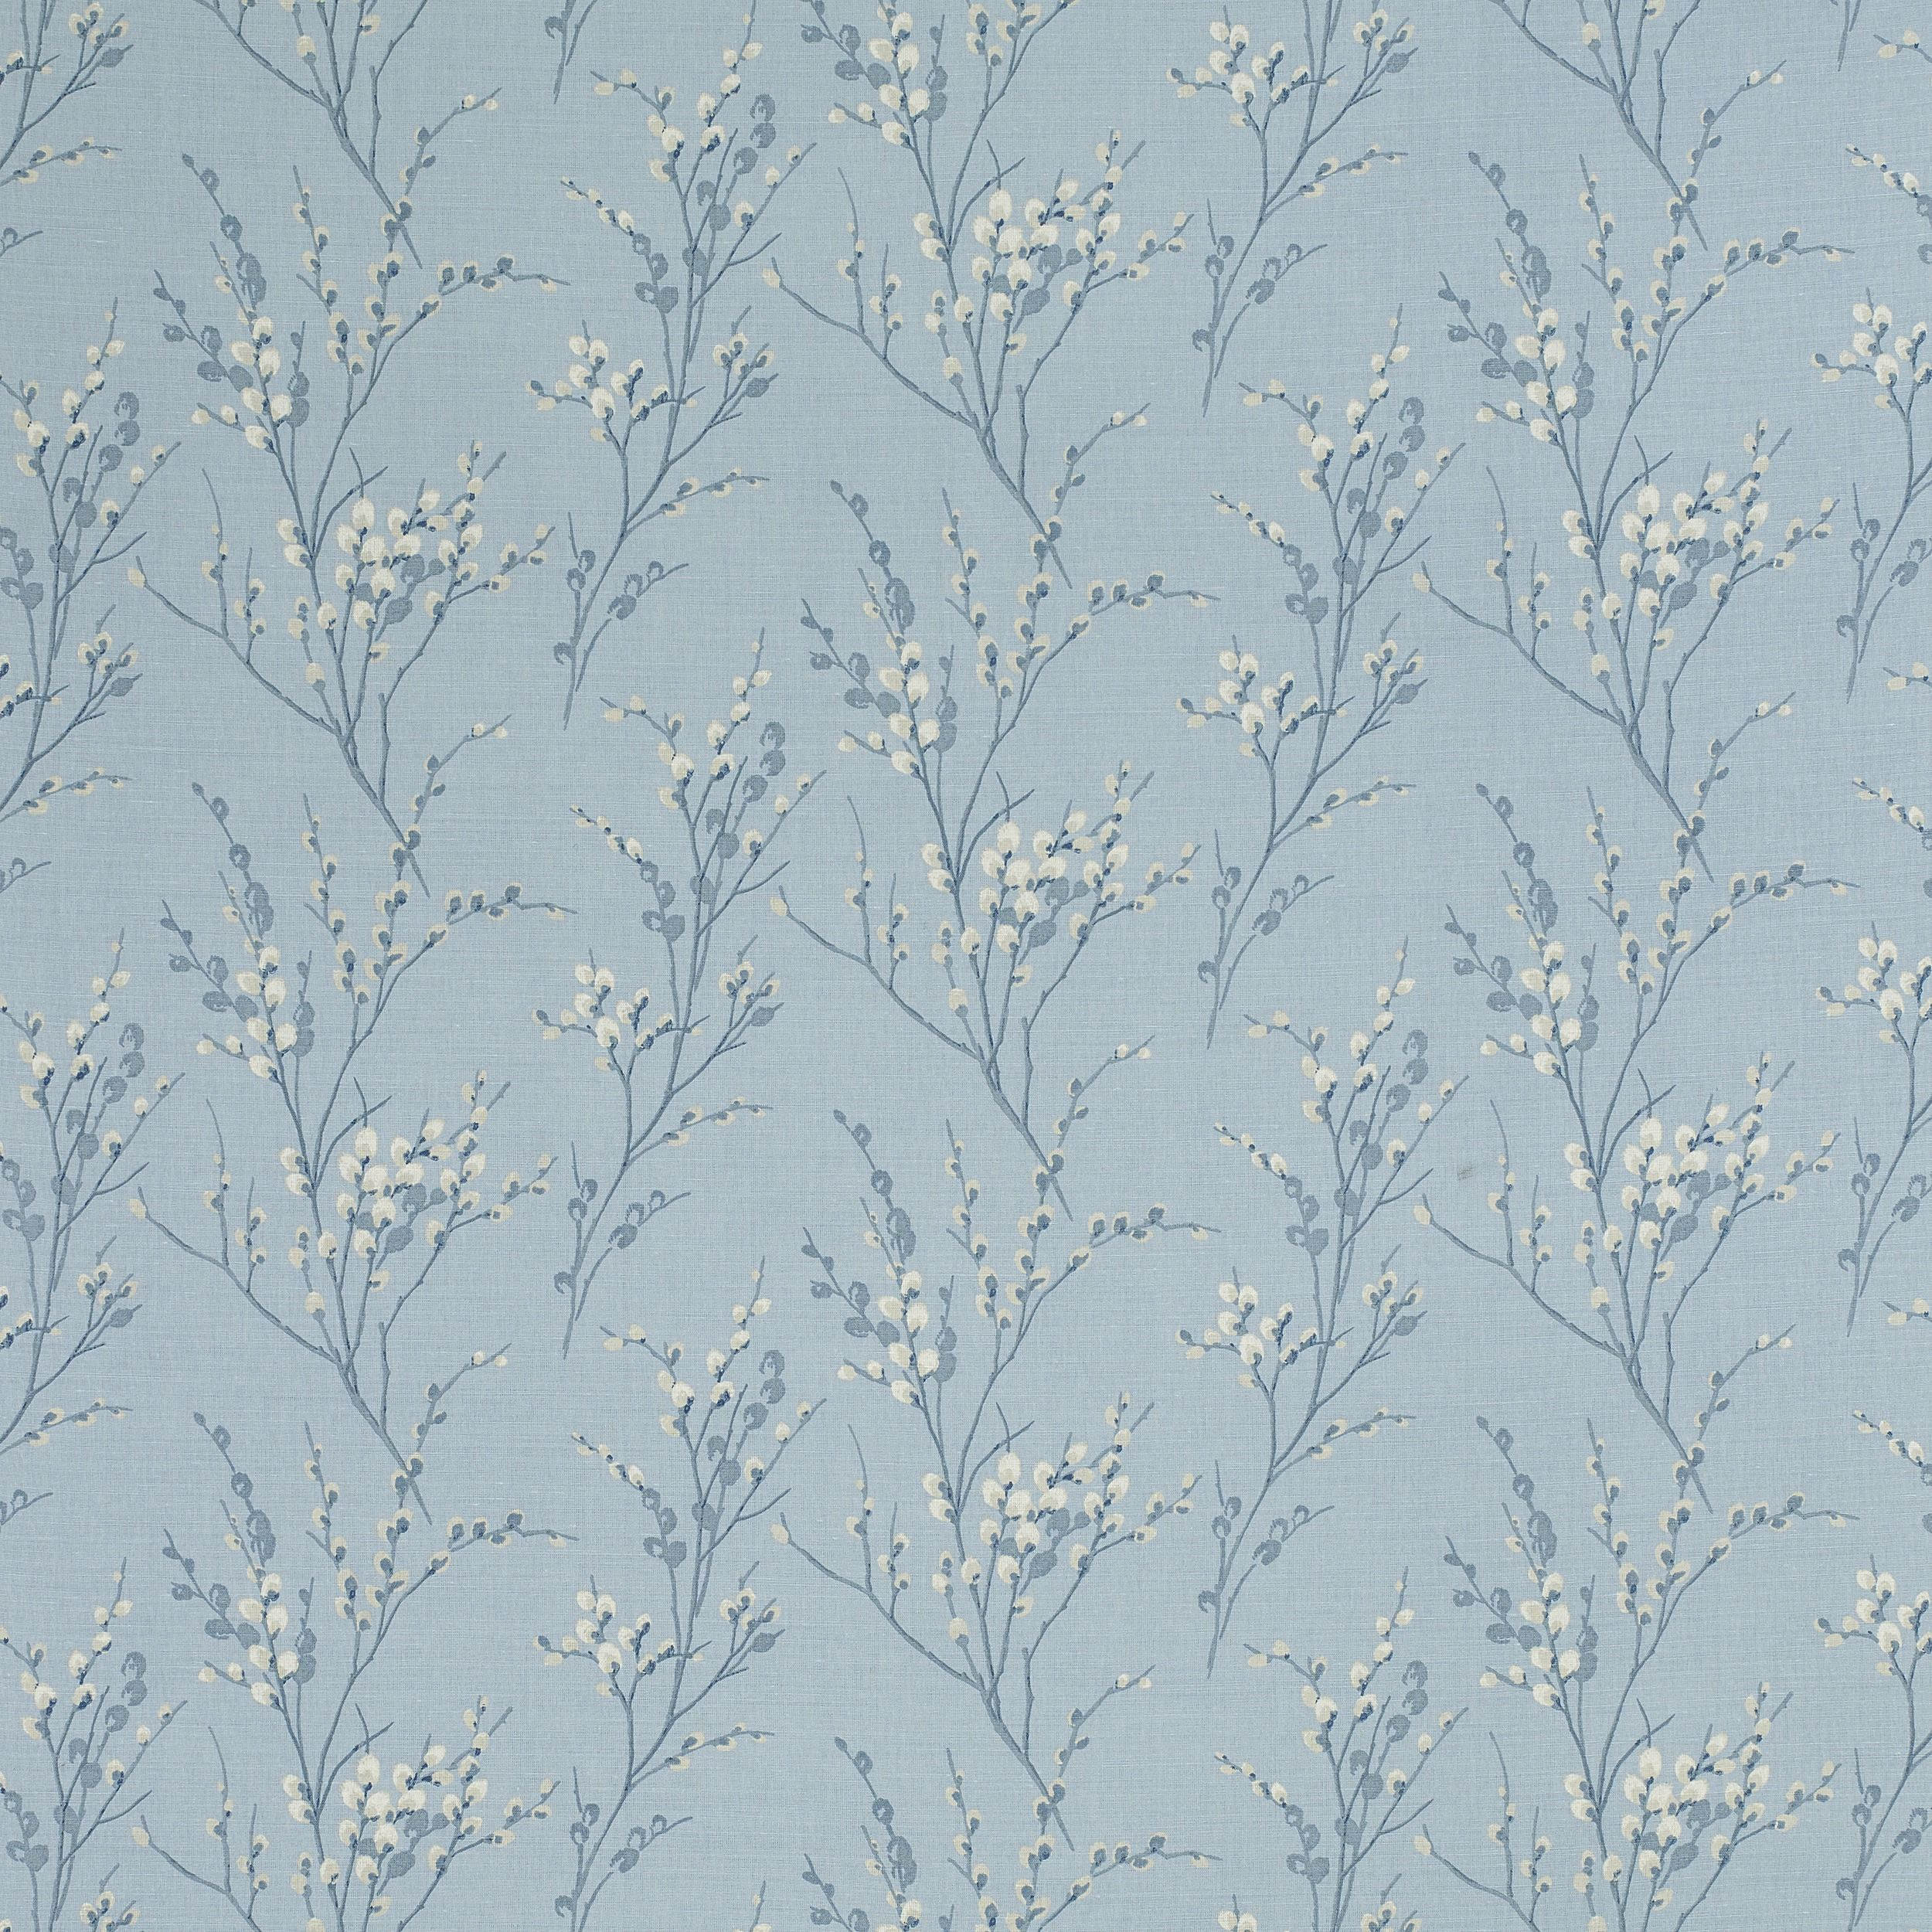 Pussy Willow Seaspray Blue Floral Wallpaper at Laura Ashley